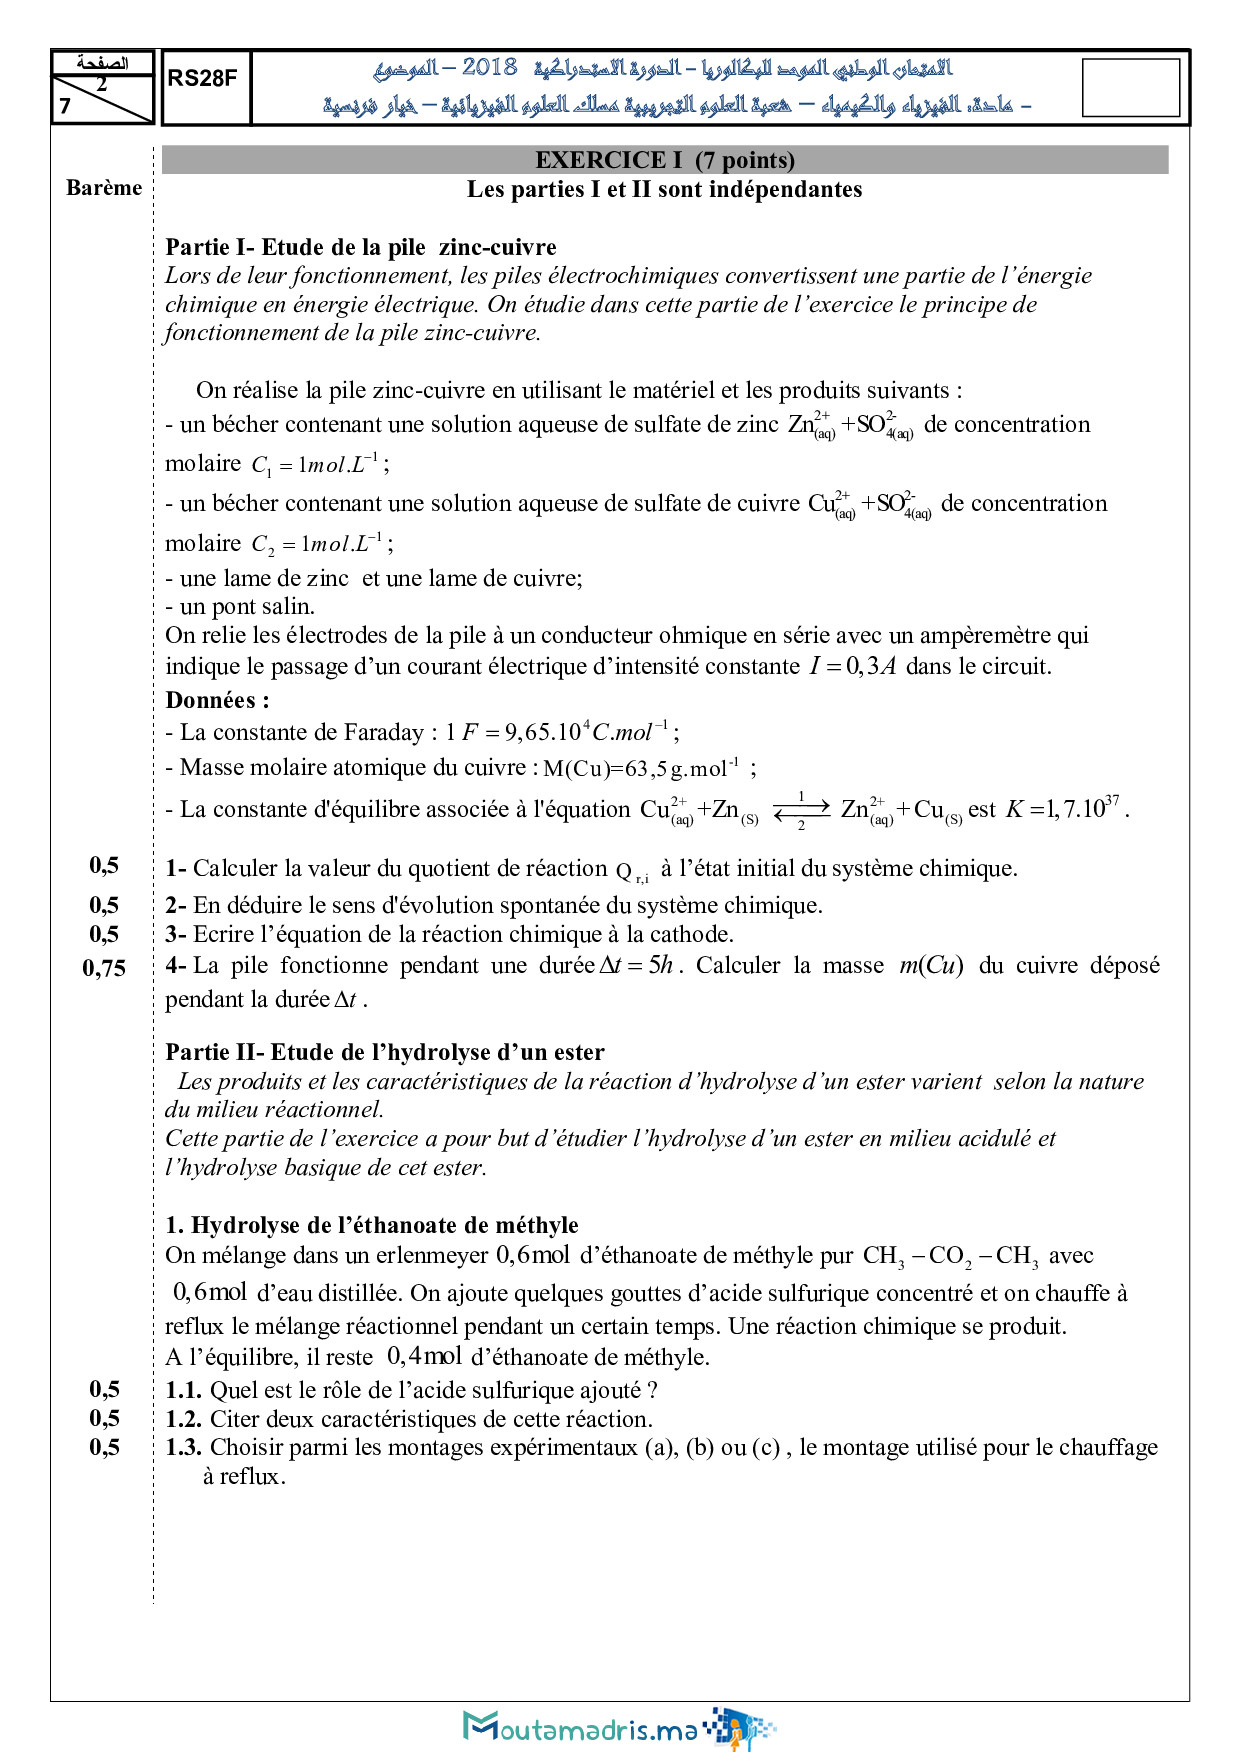 Examen National Physique-Chimie SPC 2018 Rattrapage - Sujet2.jpg